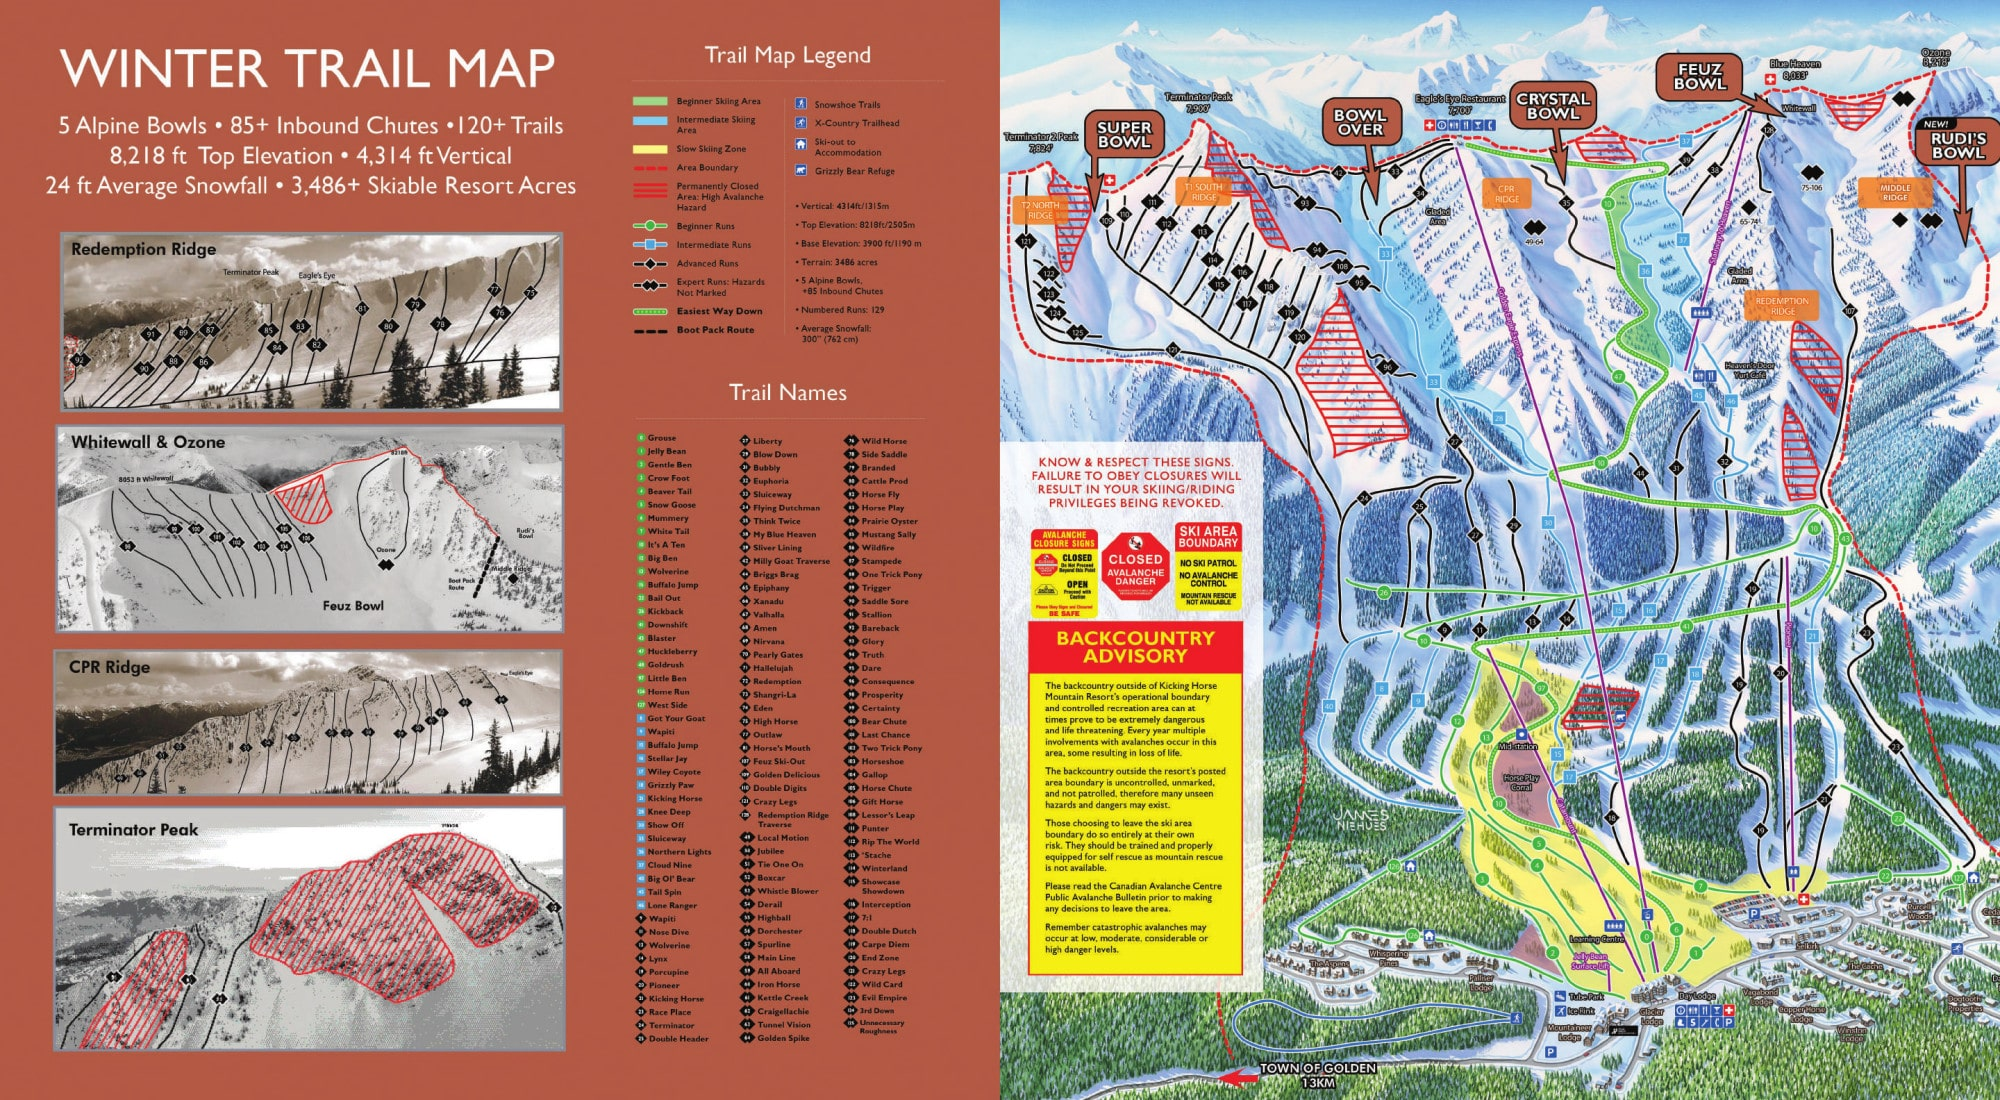 Kicking Horse Piste Map / Trail Map on kicking horse skiing, red mountain ski map, banff ski map, lake louise ski map, kicking horse bike park, kicking horse summer,